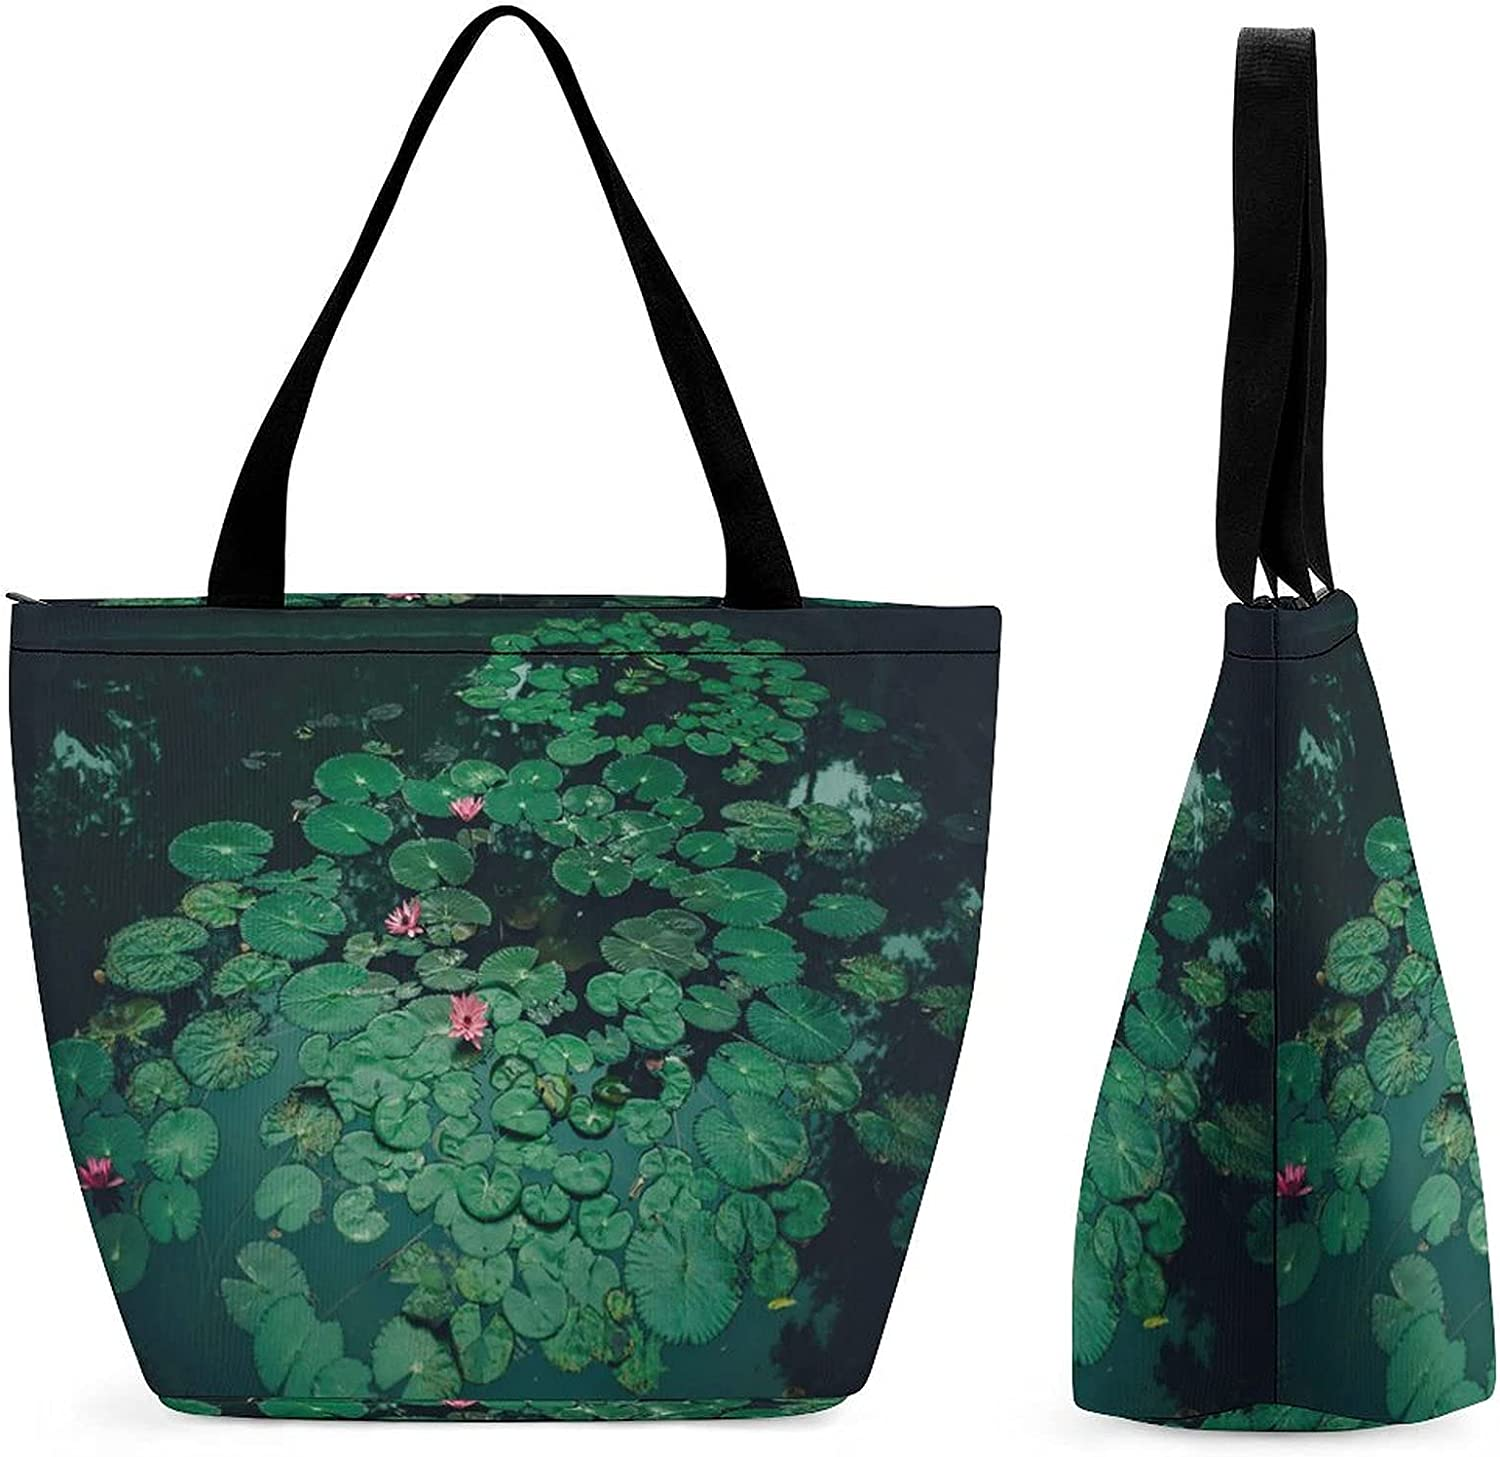 Limited time sale YANFIND Shopping Bag for Ladies Aquatic Bl Plant Ranking TOP10 Beautiful Bloom